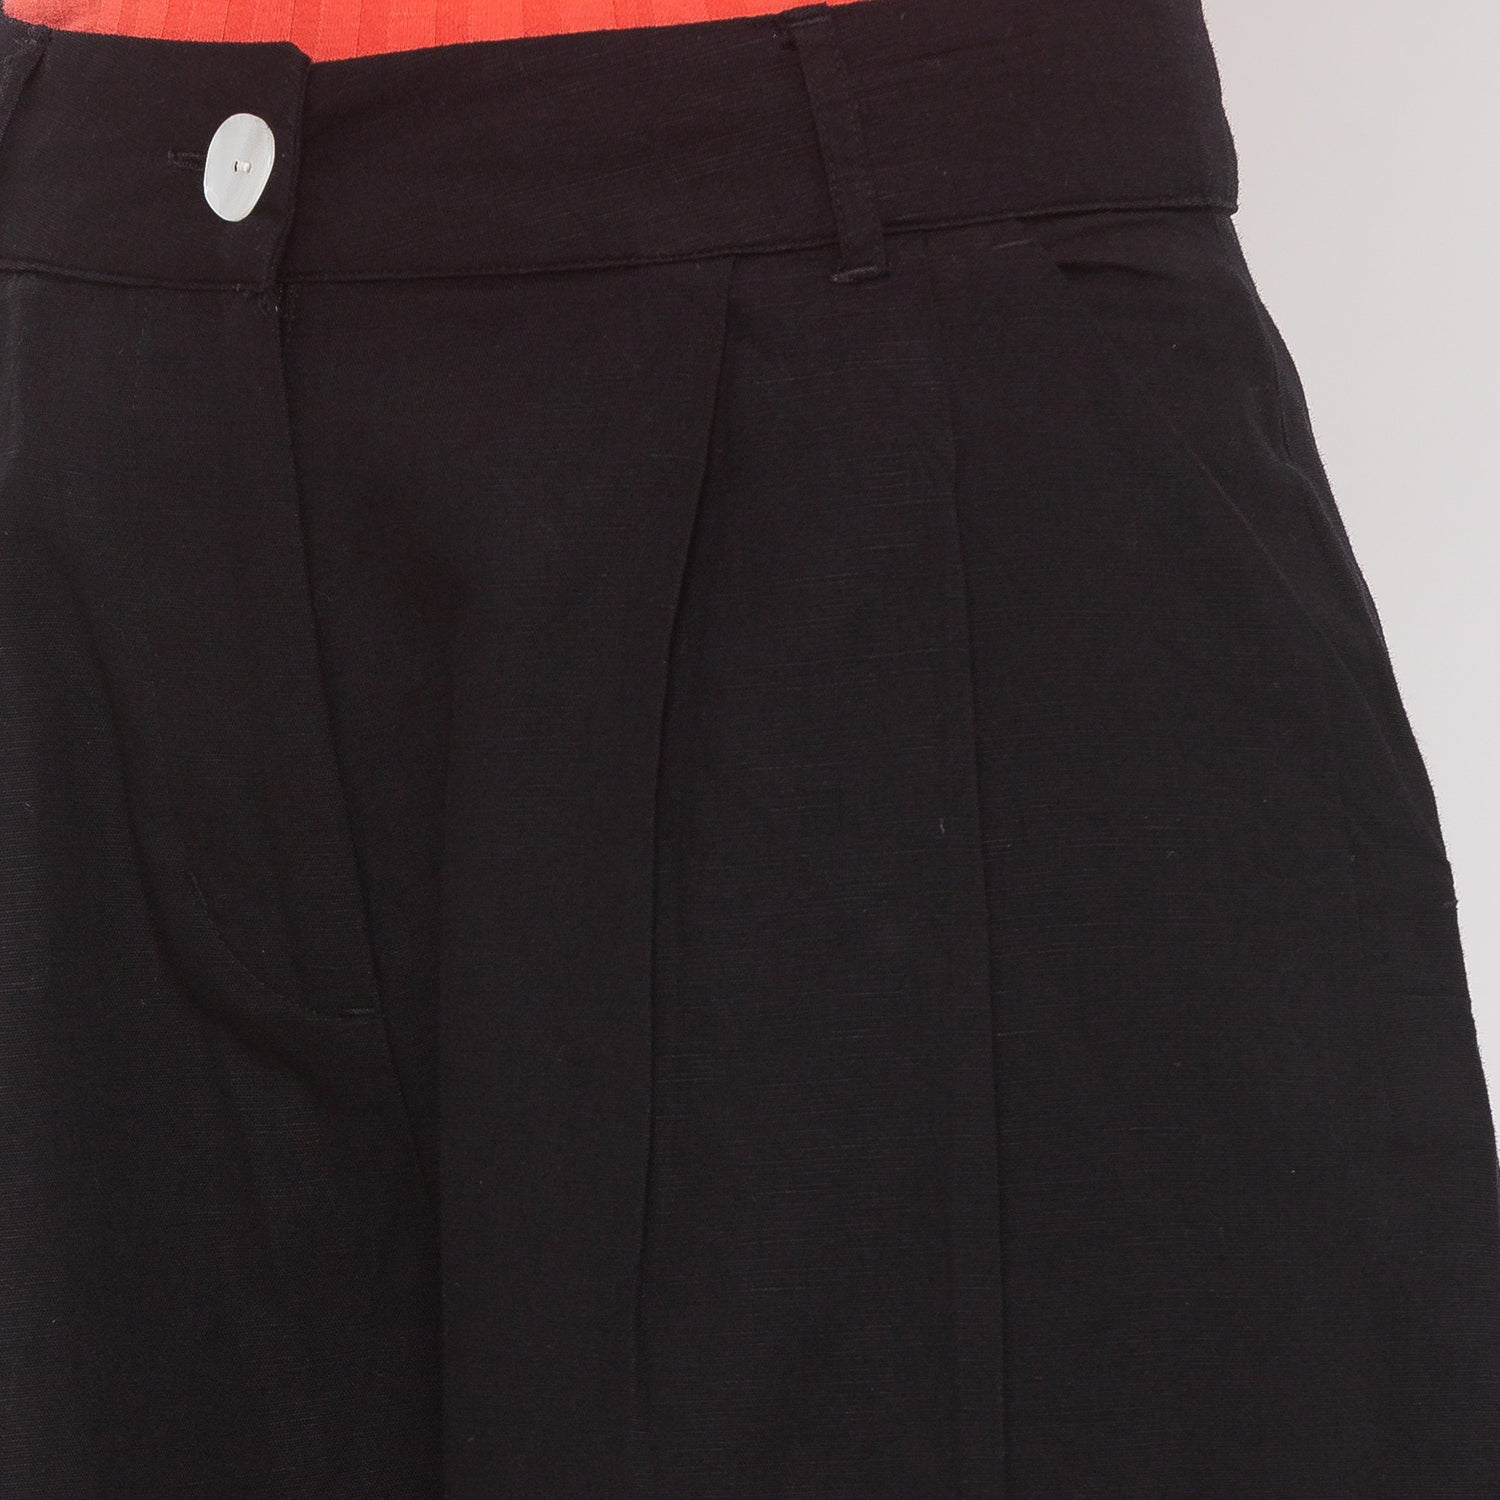 Globus Black Solid Trousers-5